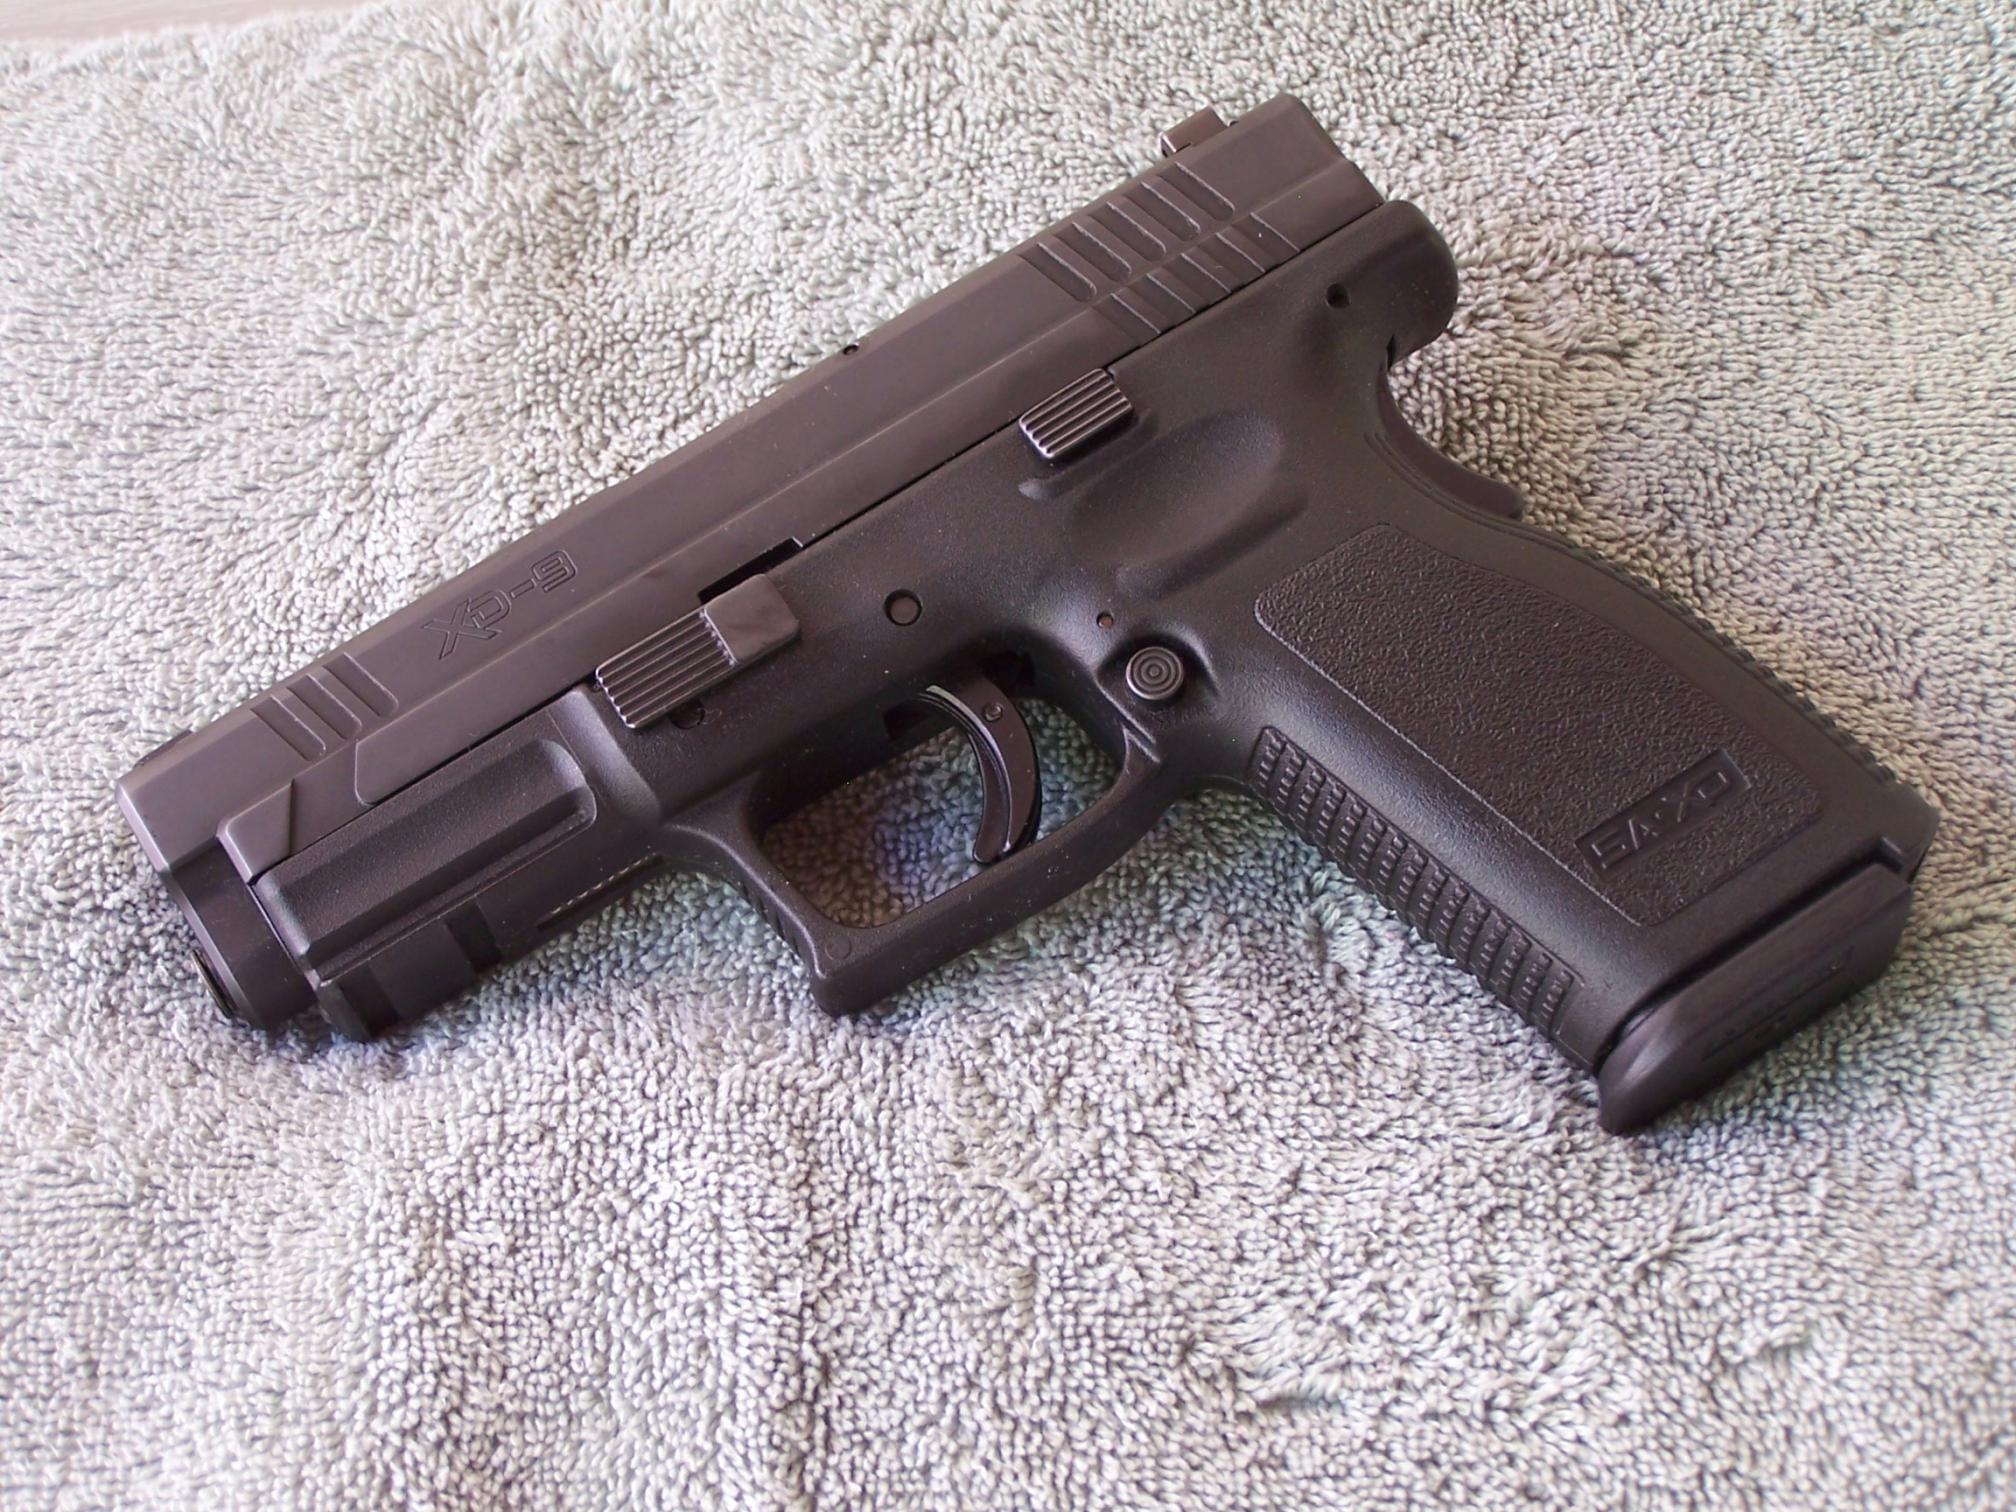 """Official """"I love my beat up carry gun"""" picture thread-007.jpg"""